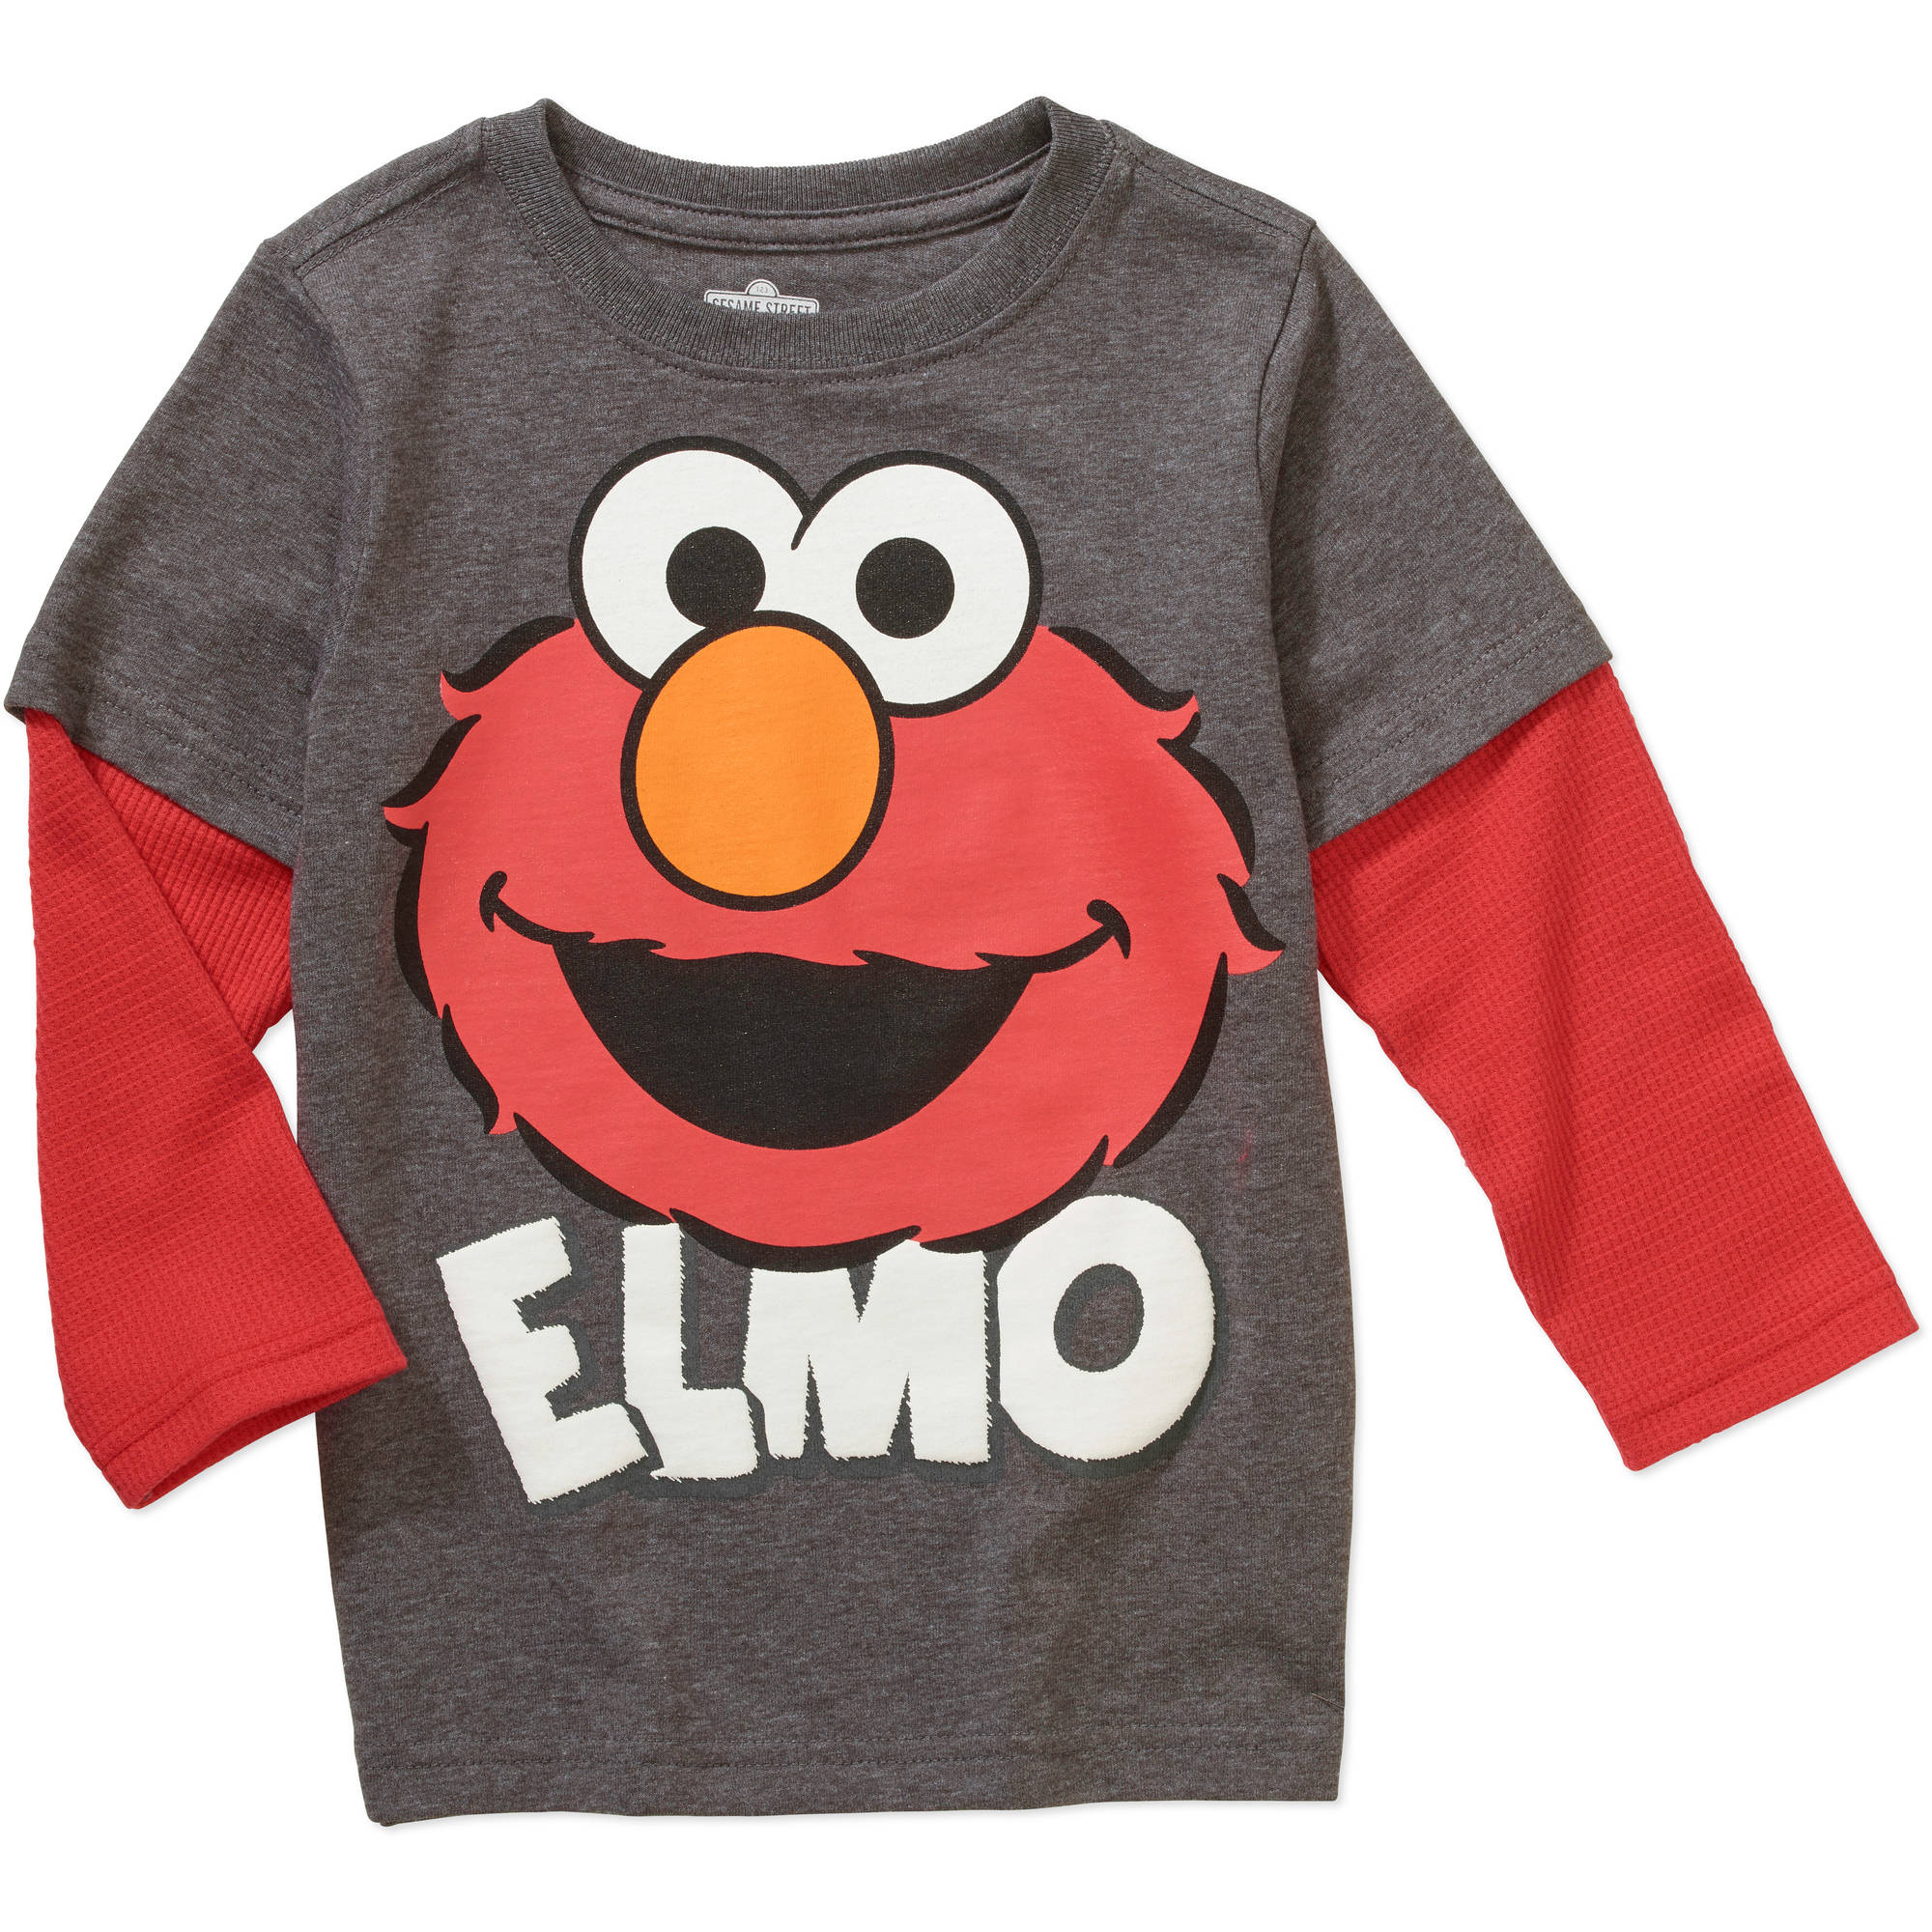 Sesame Street Elmo Toddler Boy Hangdown Graphic Tee Shirt